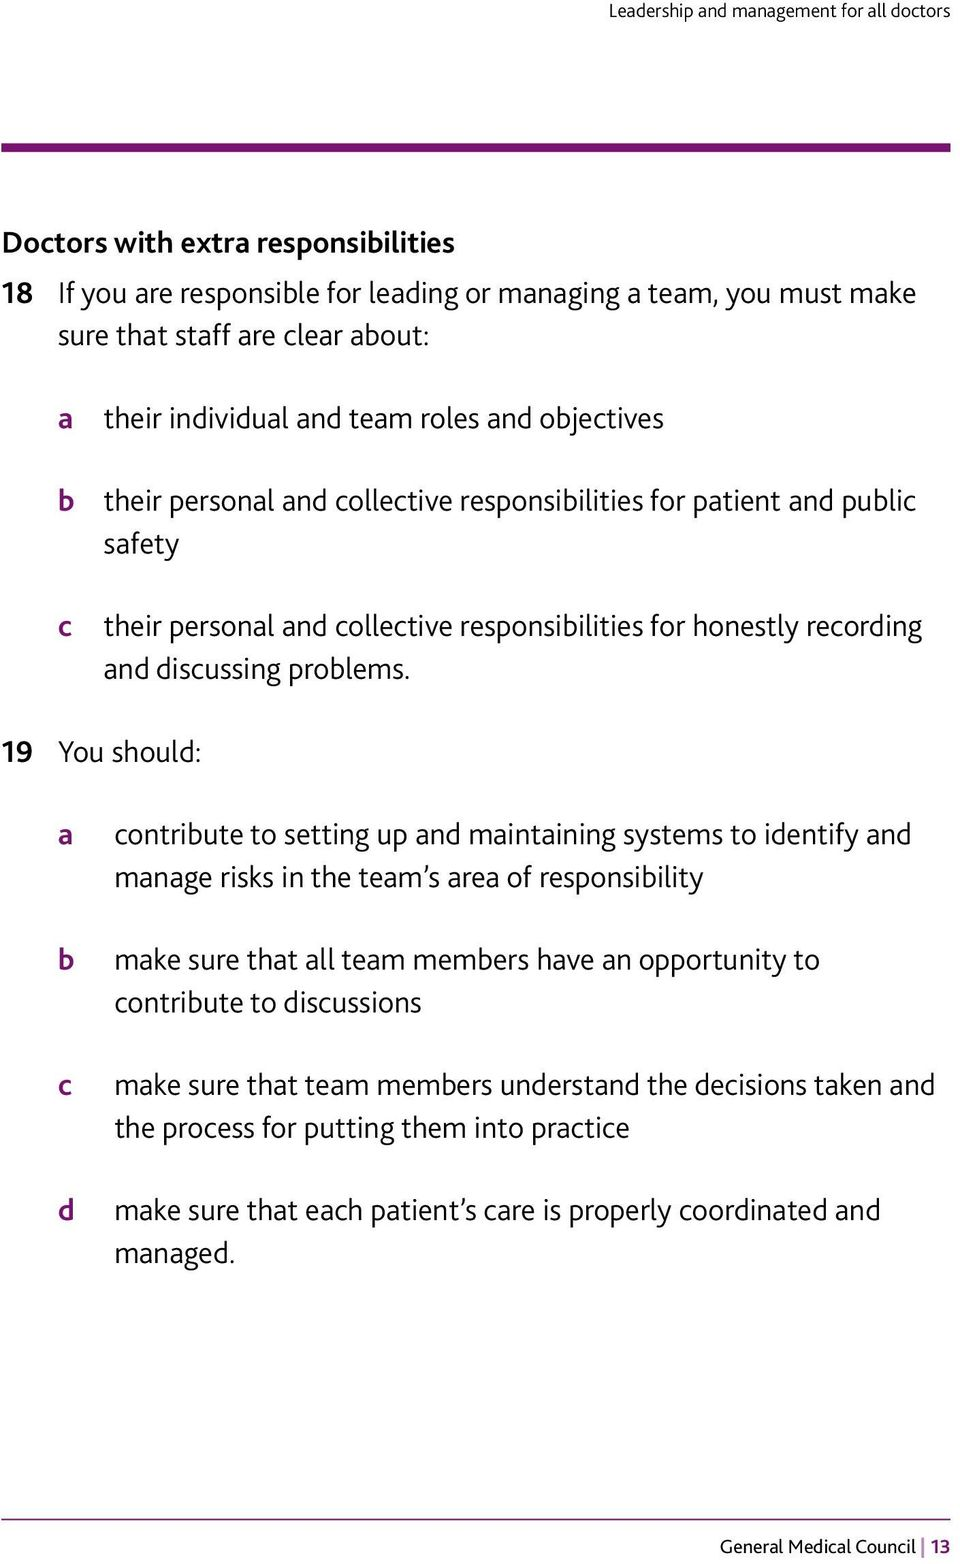 19 You should: a b c d contribute to setting up and maintaining systems to identify and manage risks in the team s area of responsibility make sure that all team members have an opportunity to